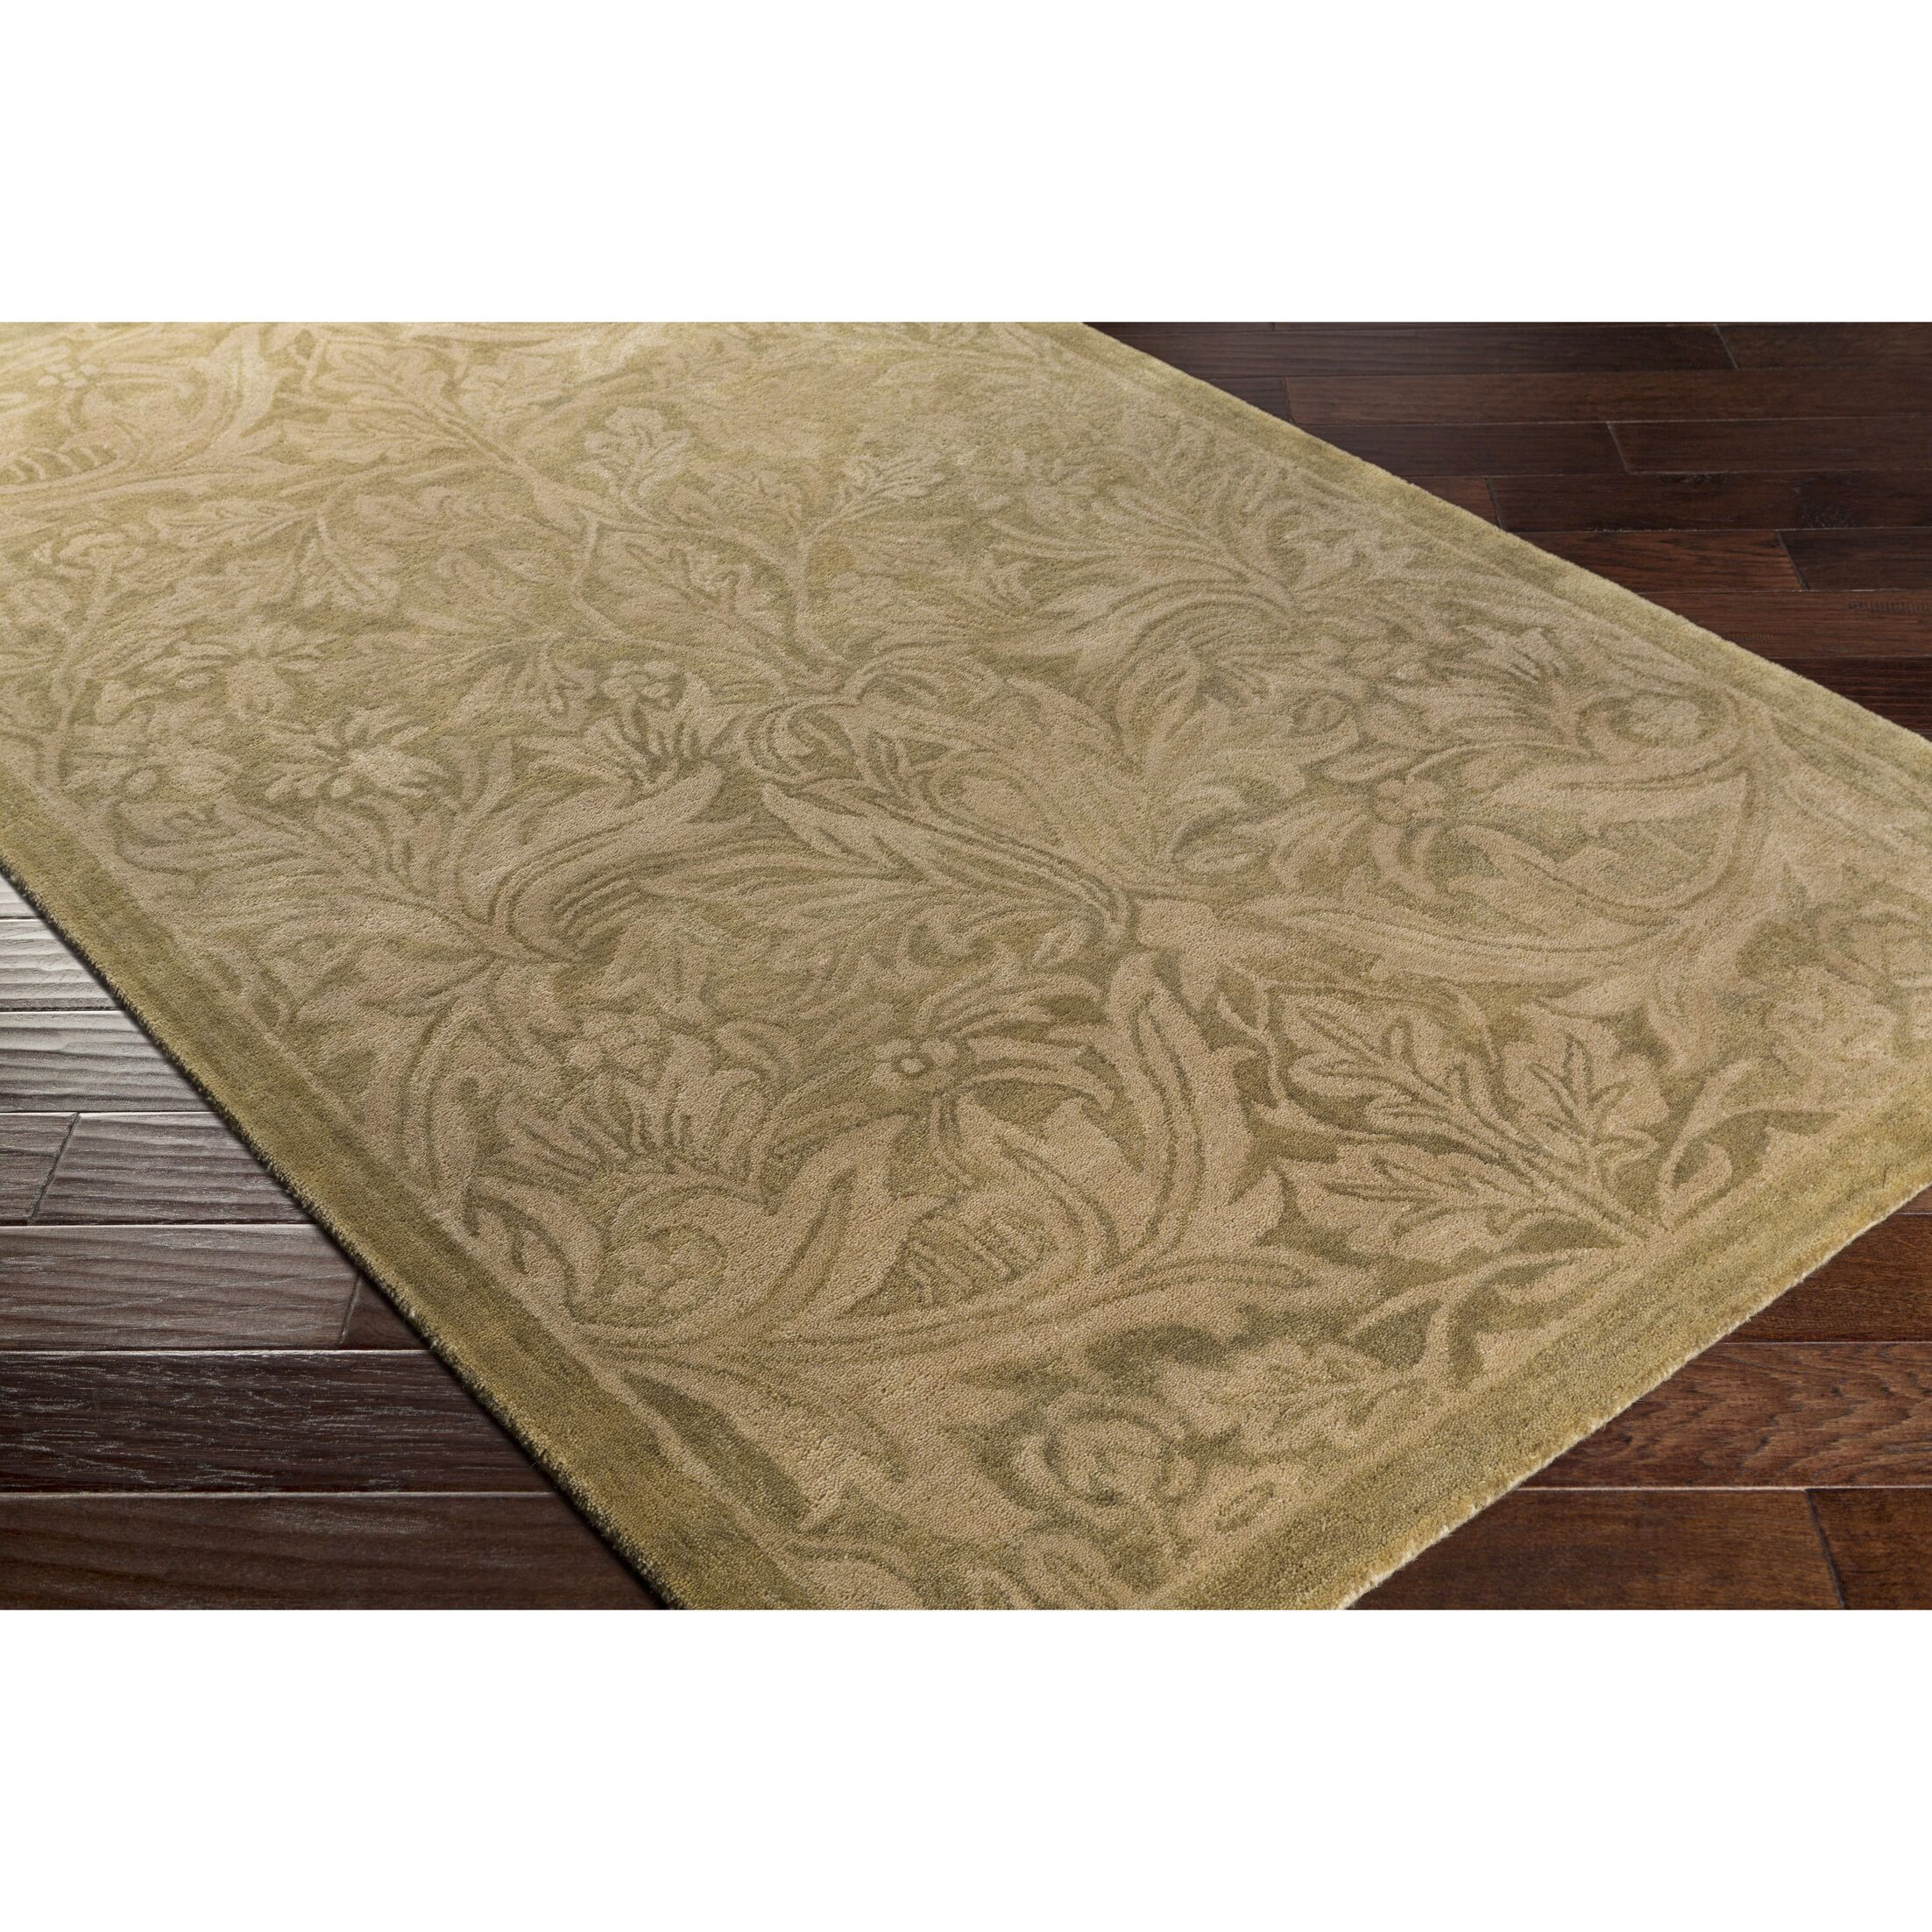 Acton Hand-Tufted Neutral/Brown Area Rug Rug Size: Rectangle 8' x 10'